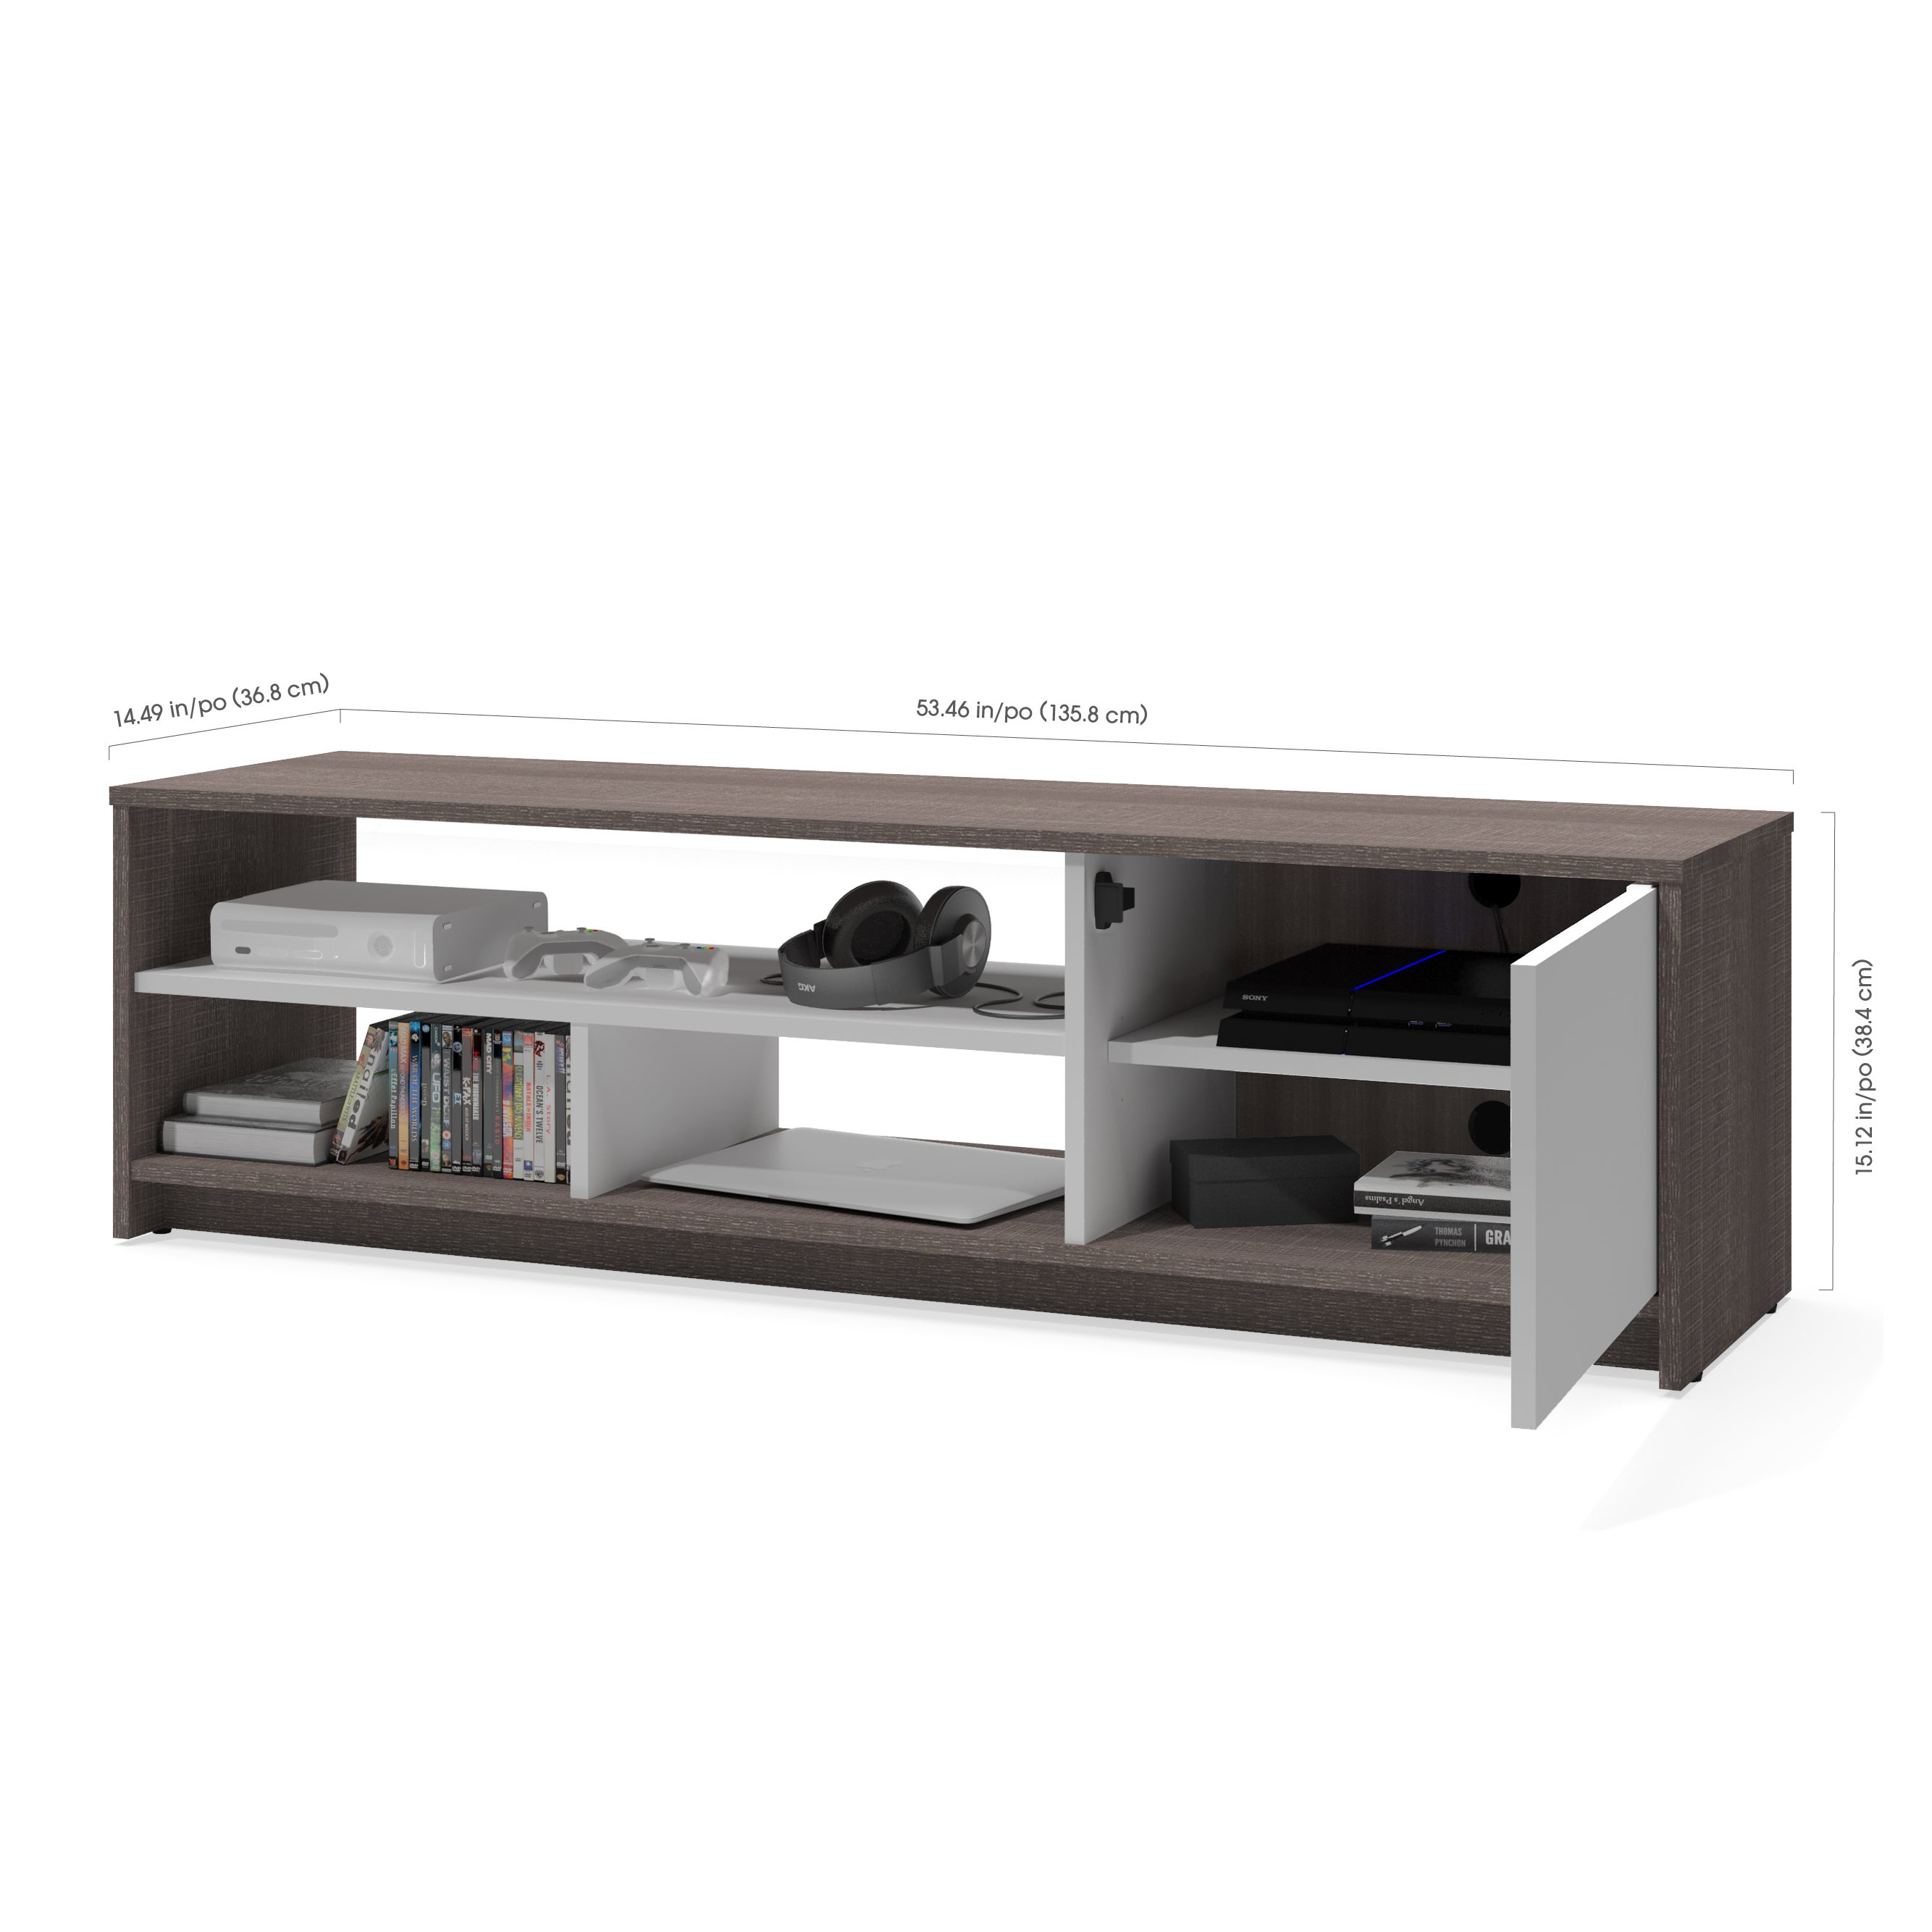 Bestar Small Space 3 Piece TV Stand and 2 Storage Towers Set